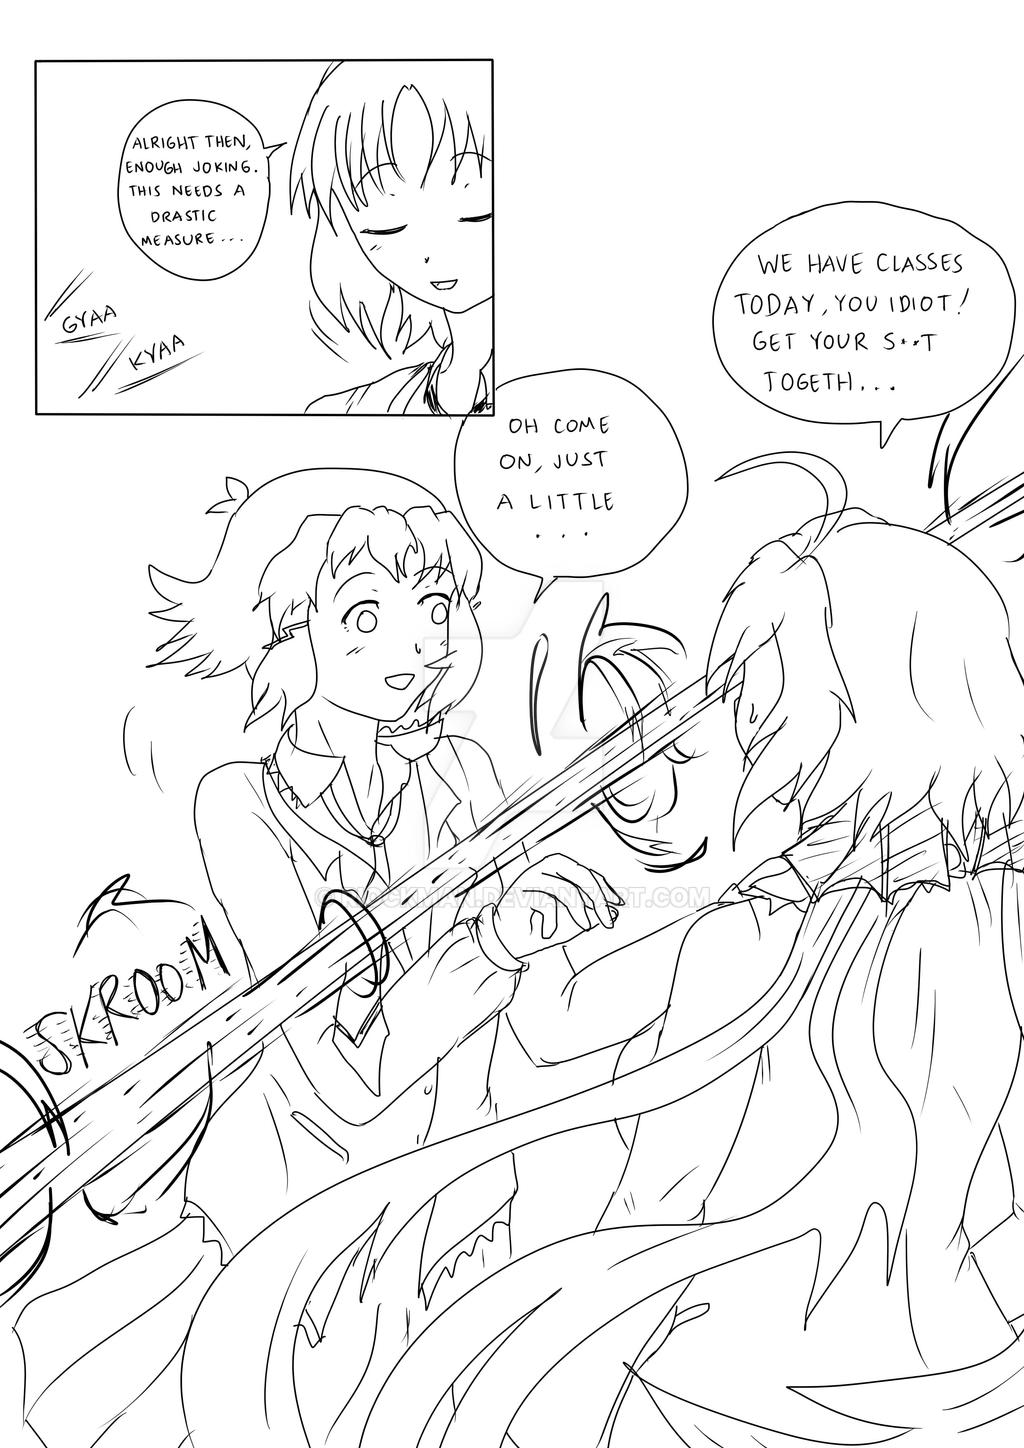 MEGADETH SYMPHONY - Page 4 (rough sketch) by riockman